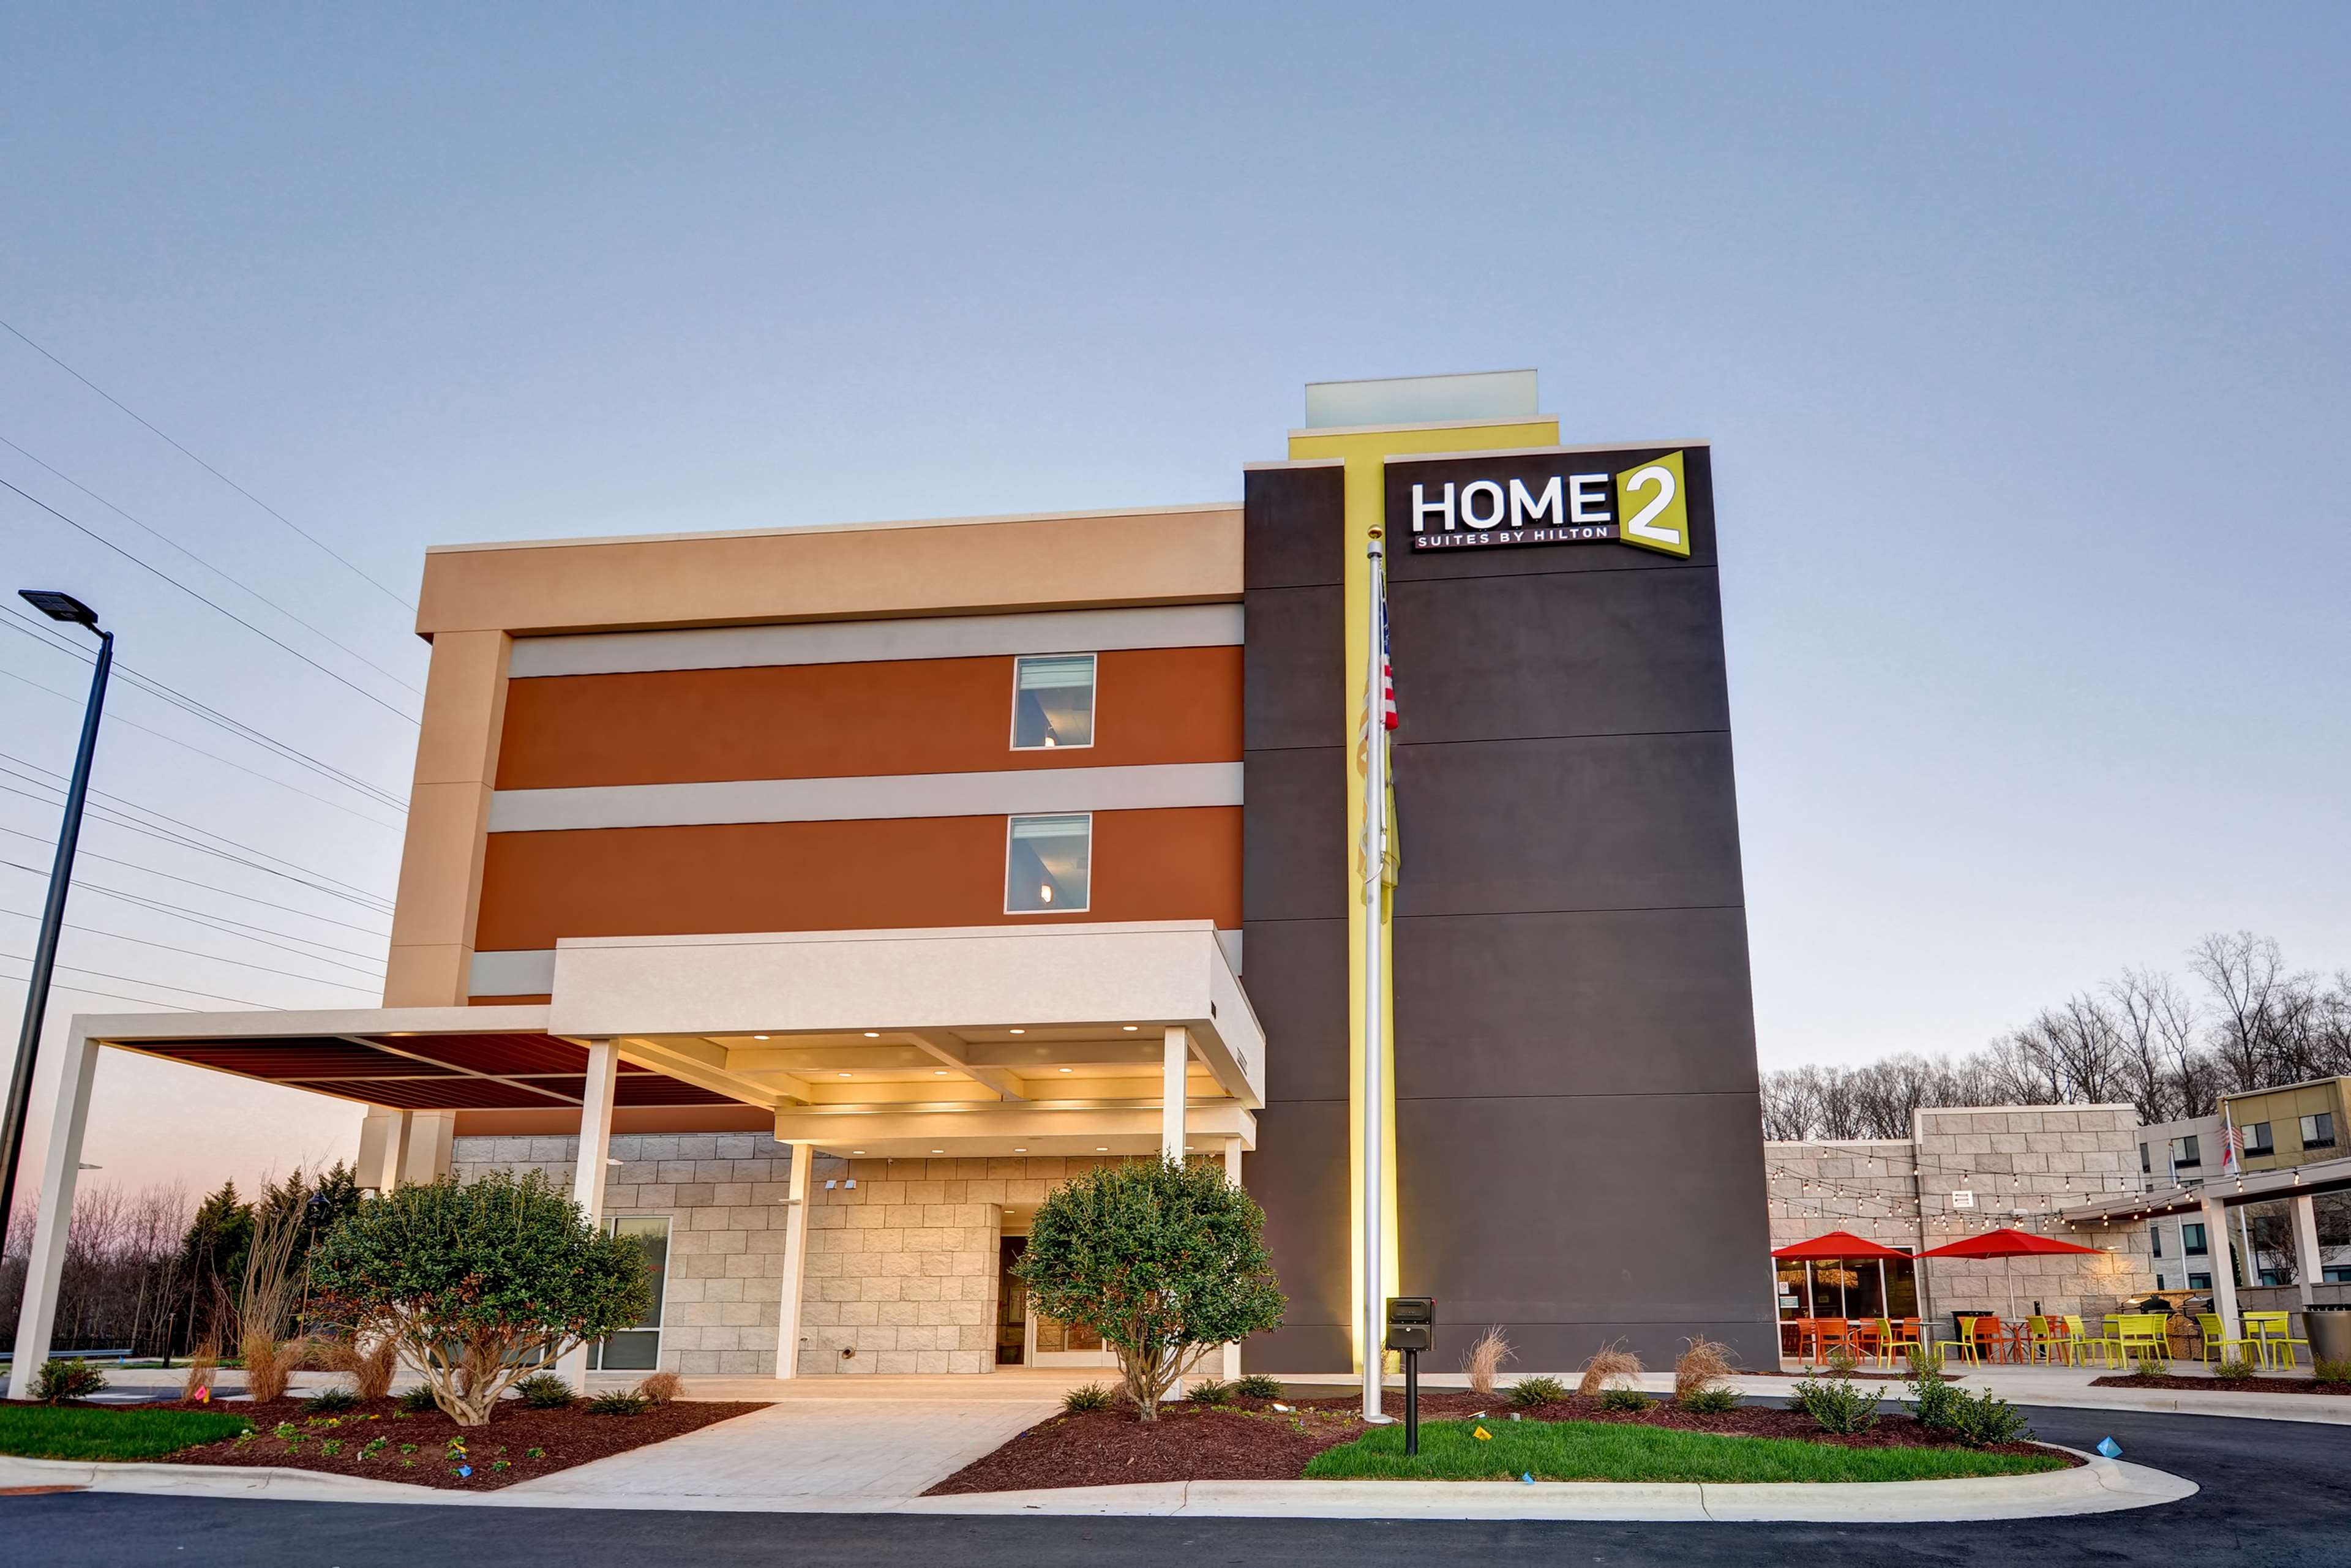 Home2 Suites by Hilton Winston-Salem Hanes Mall image 2